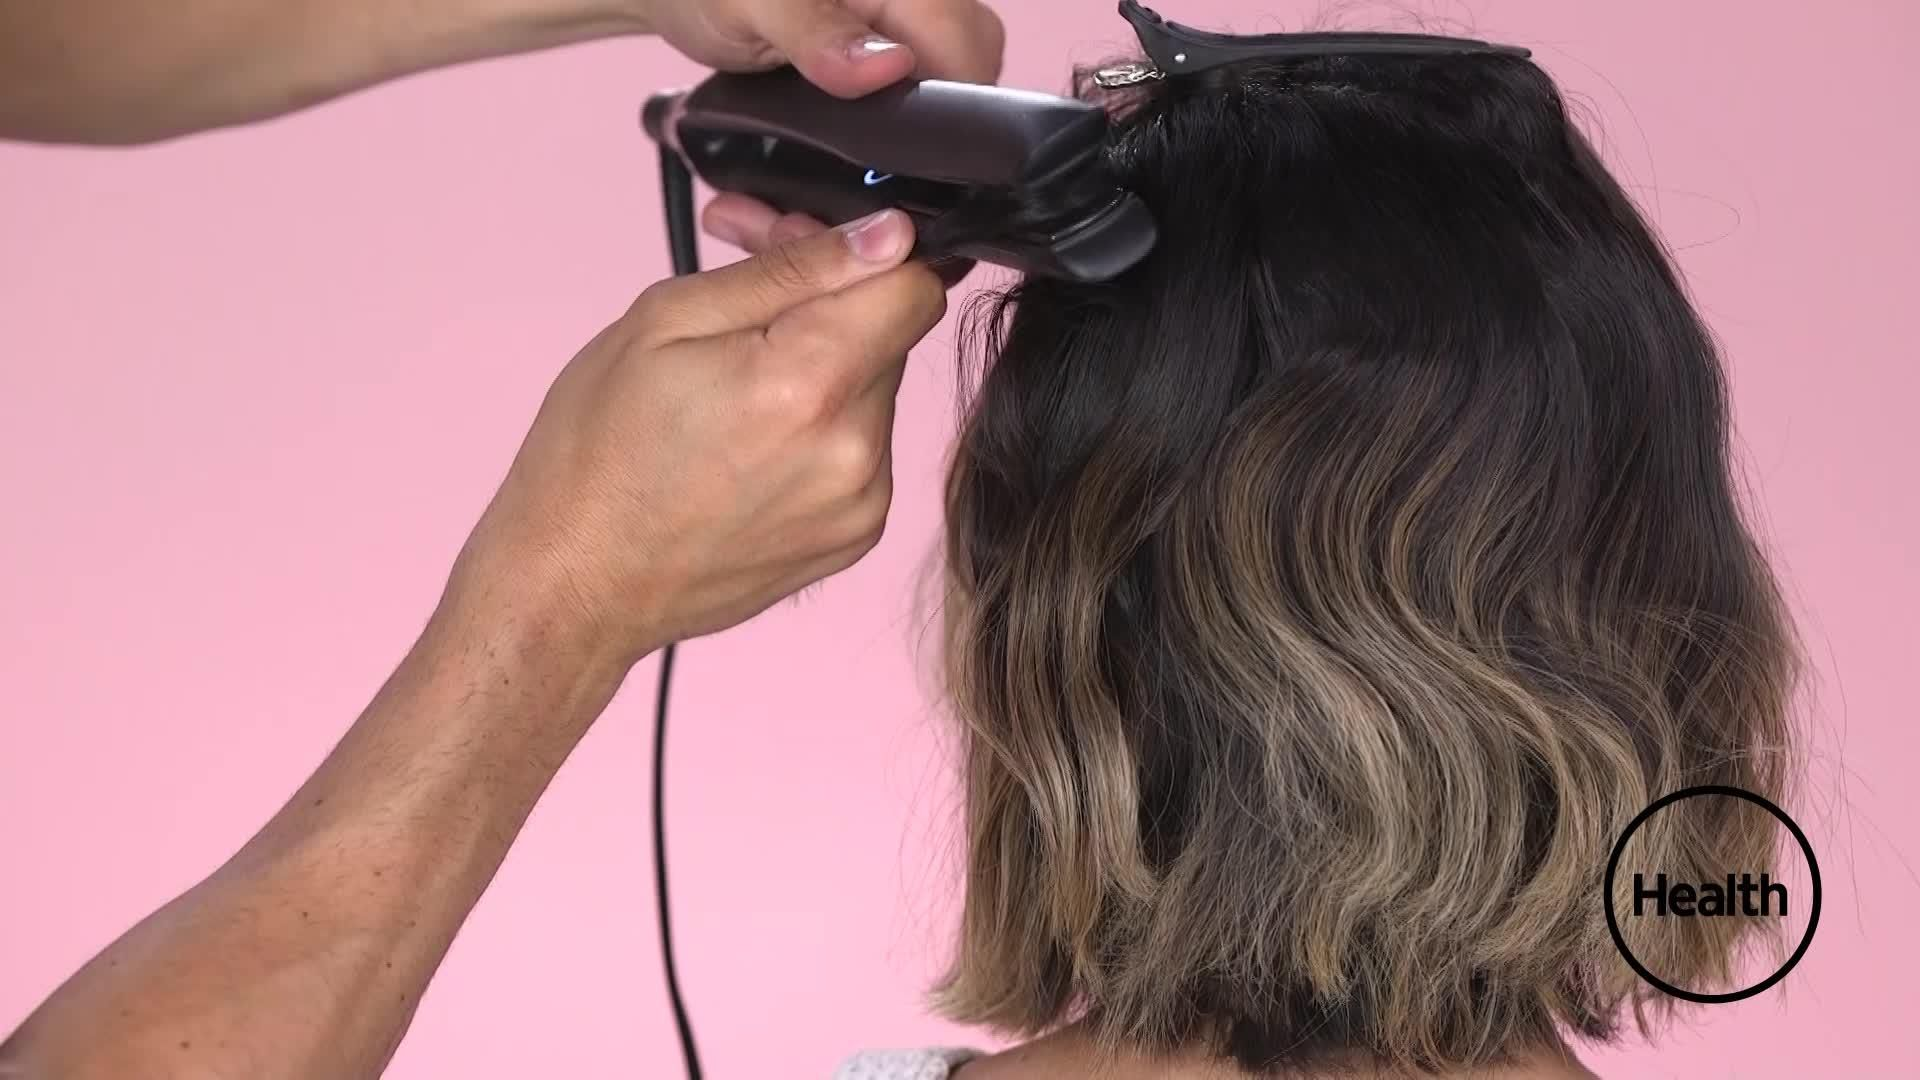 This Flat Iron Trick to Get Luscious Beach Waves